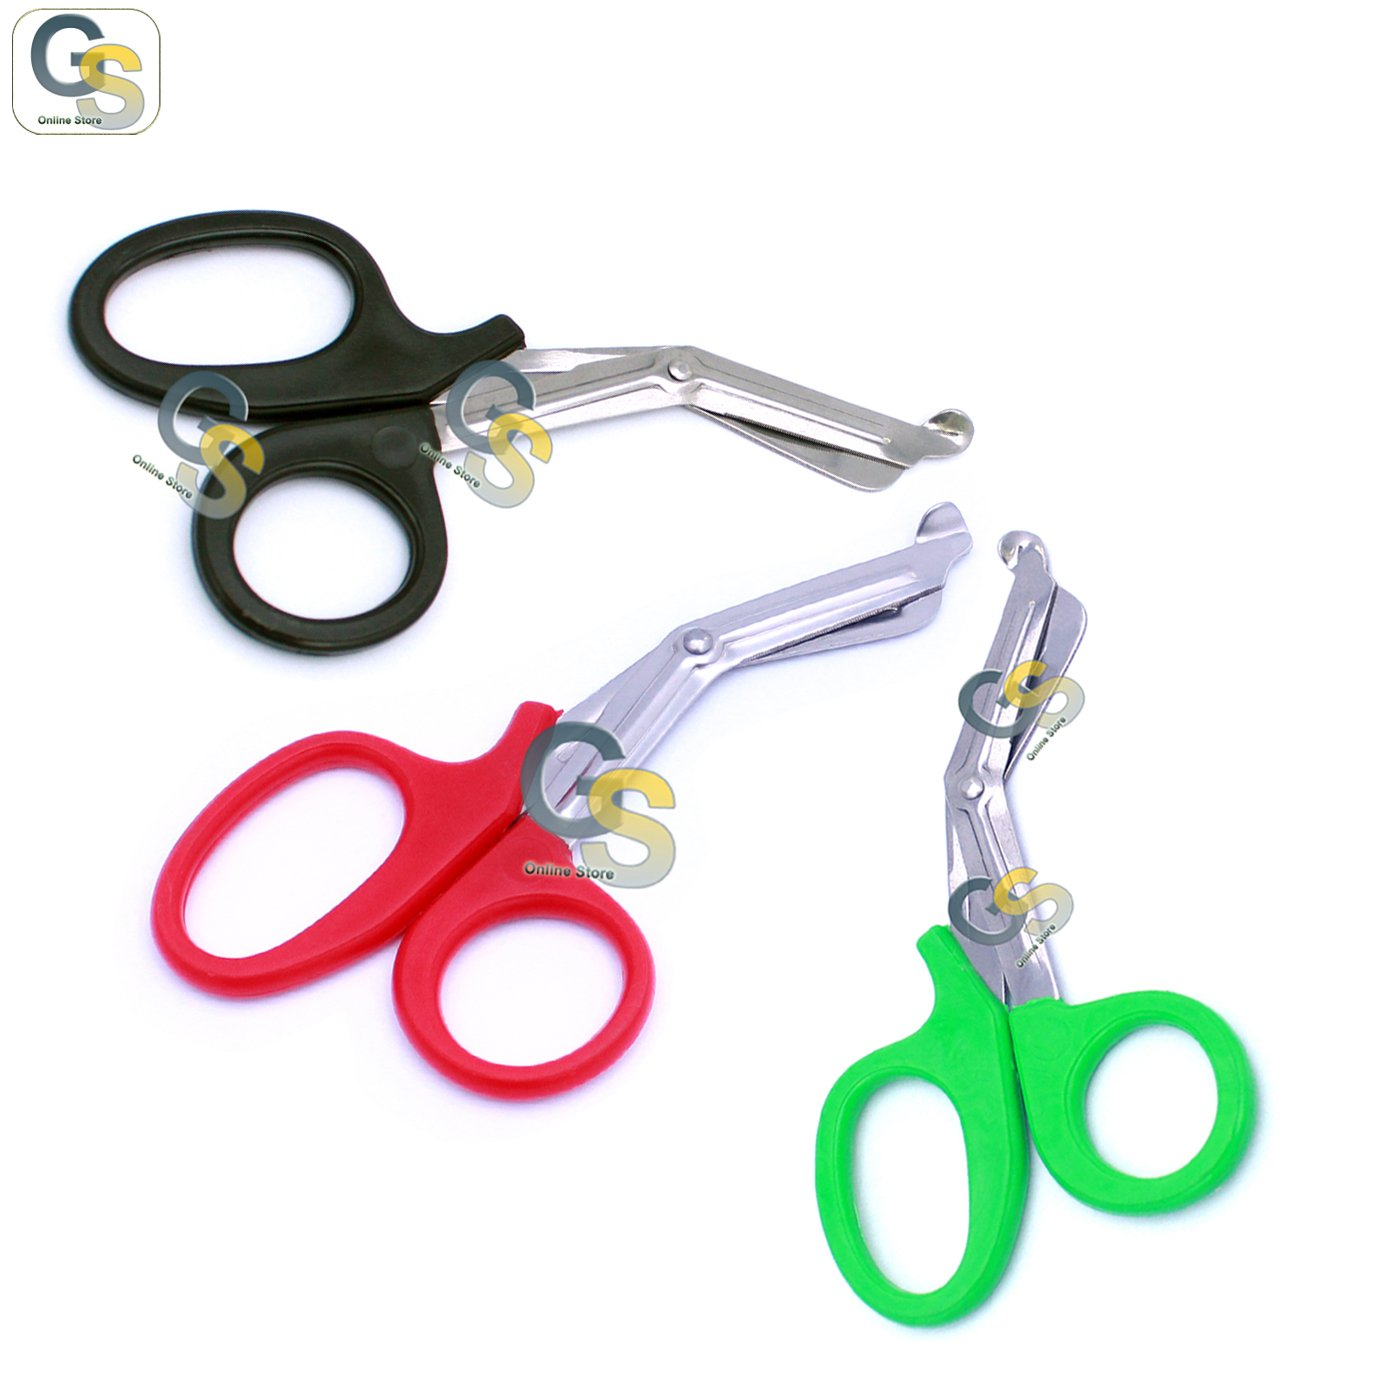 G.S 3 PCS (BLACK & RED & GREEN) PARAMEDIC UTILITY BANDAGE TRAUMA EMT EMS SHEARS SCISSORS 7.25 INCH STAINLESS STEEL